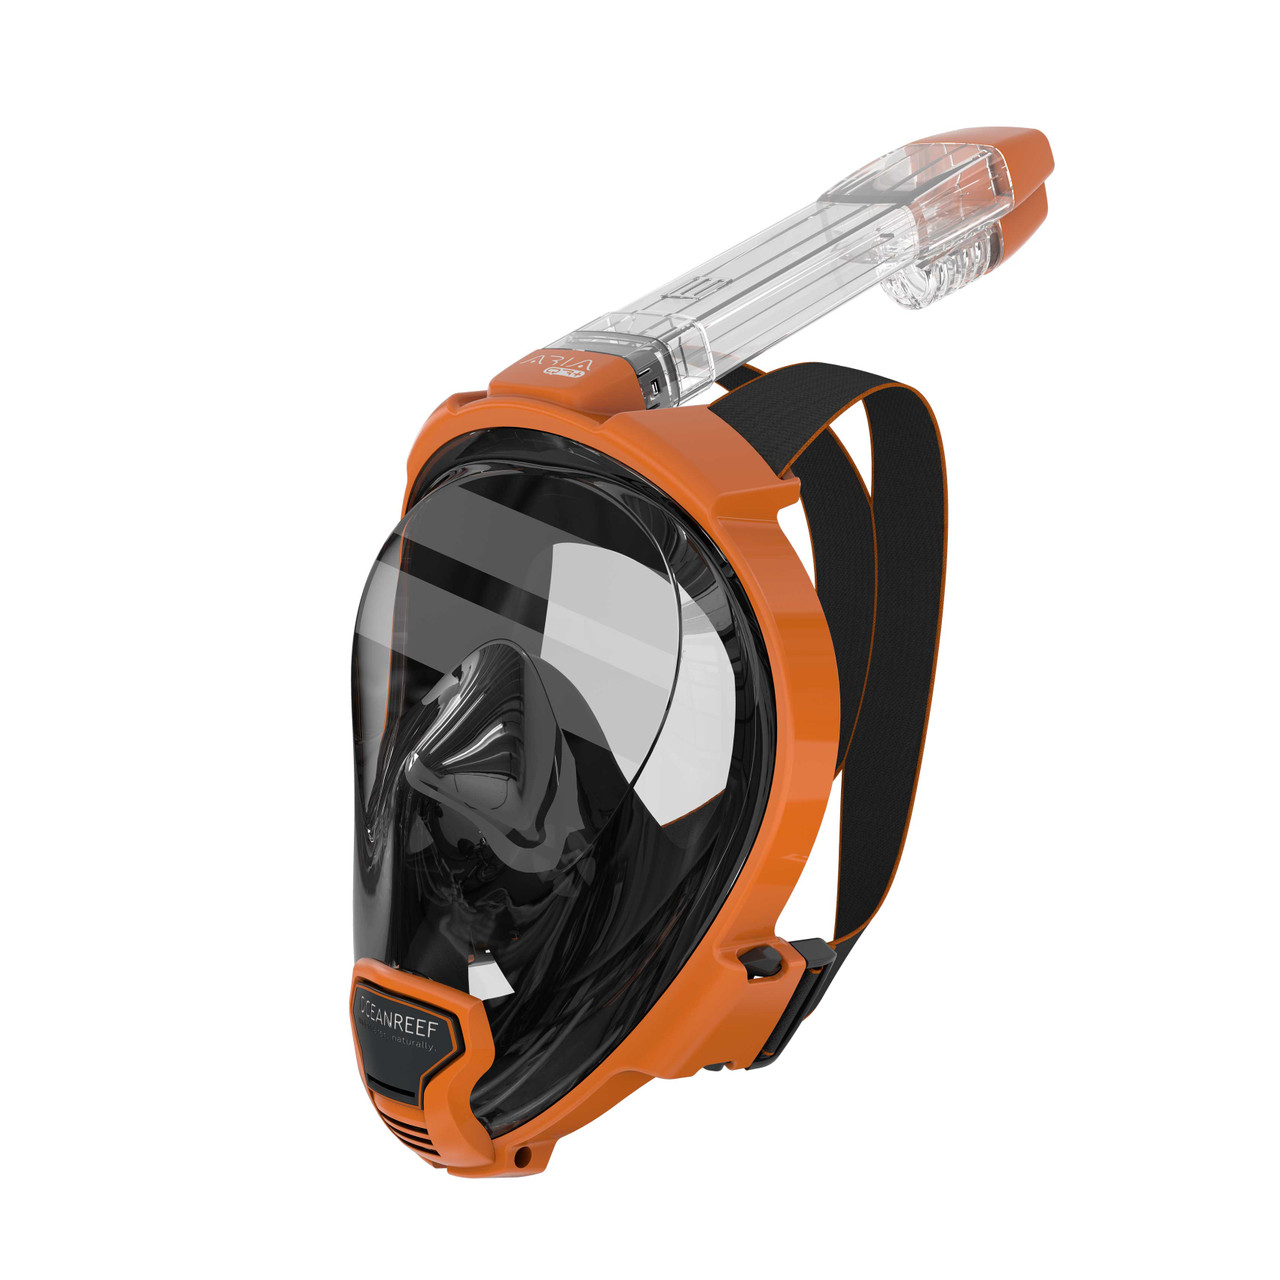 Ocean Reef Aria QR+ w/ Camera Holder Full Face Snorkeling Mask Anti-fog Orange